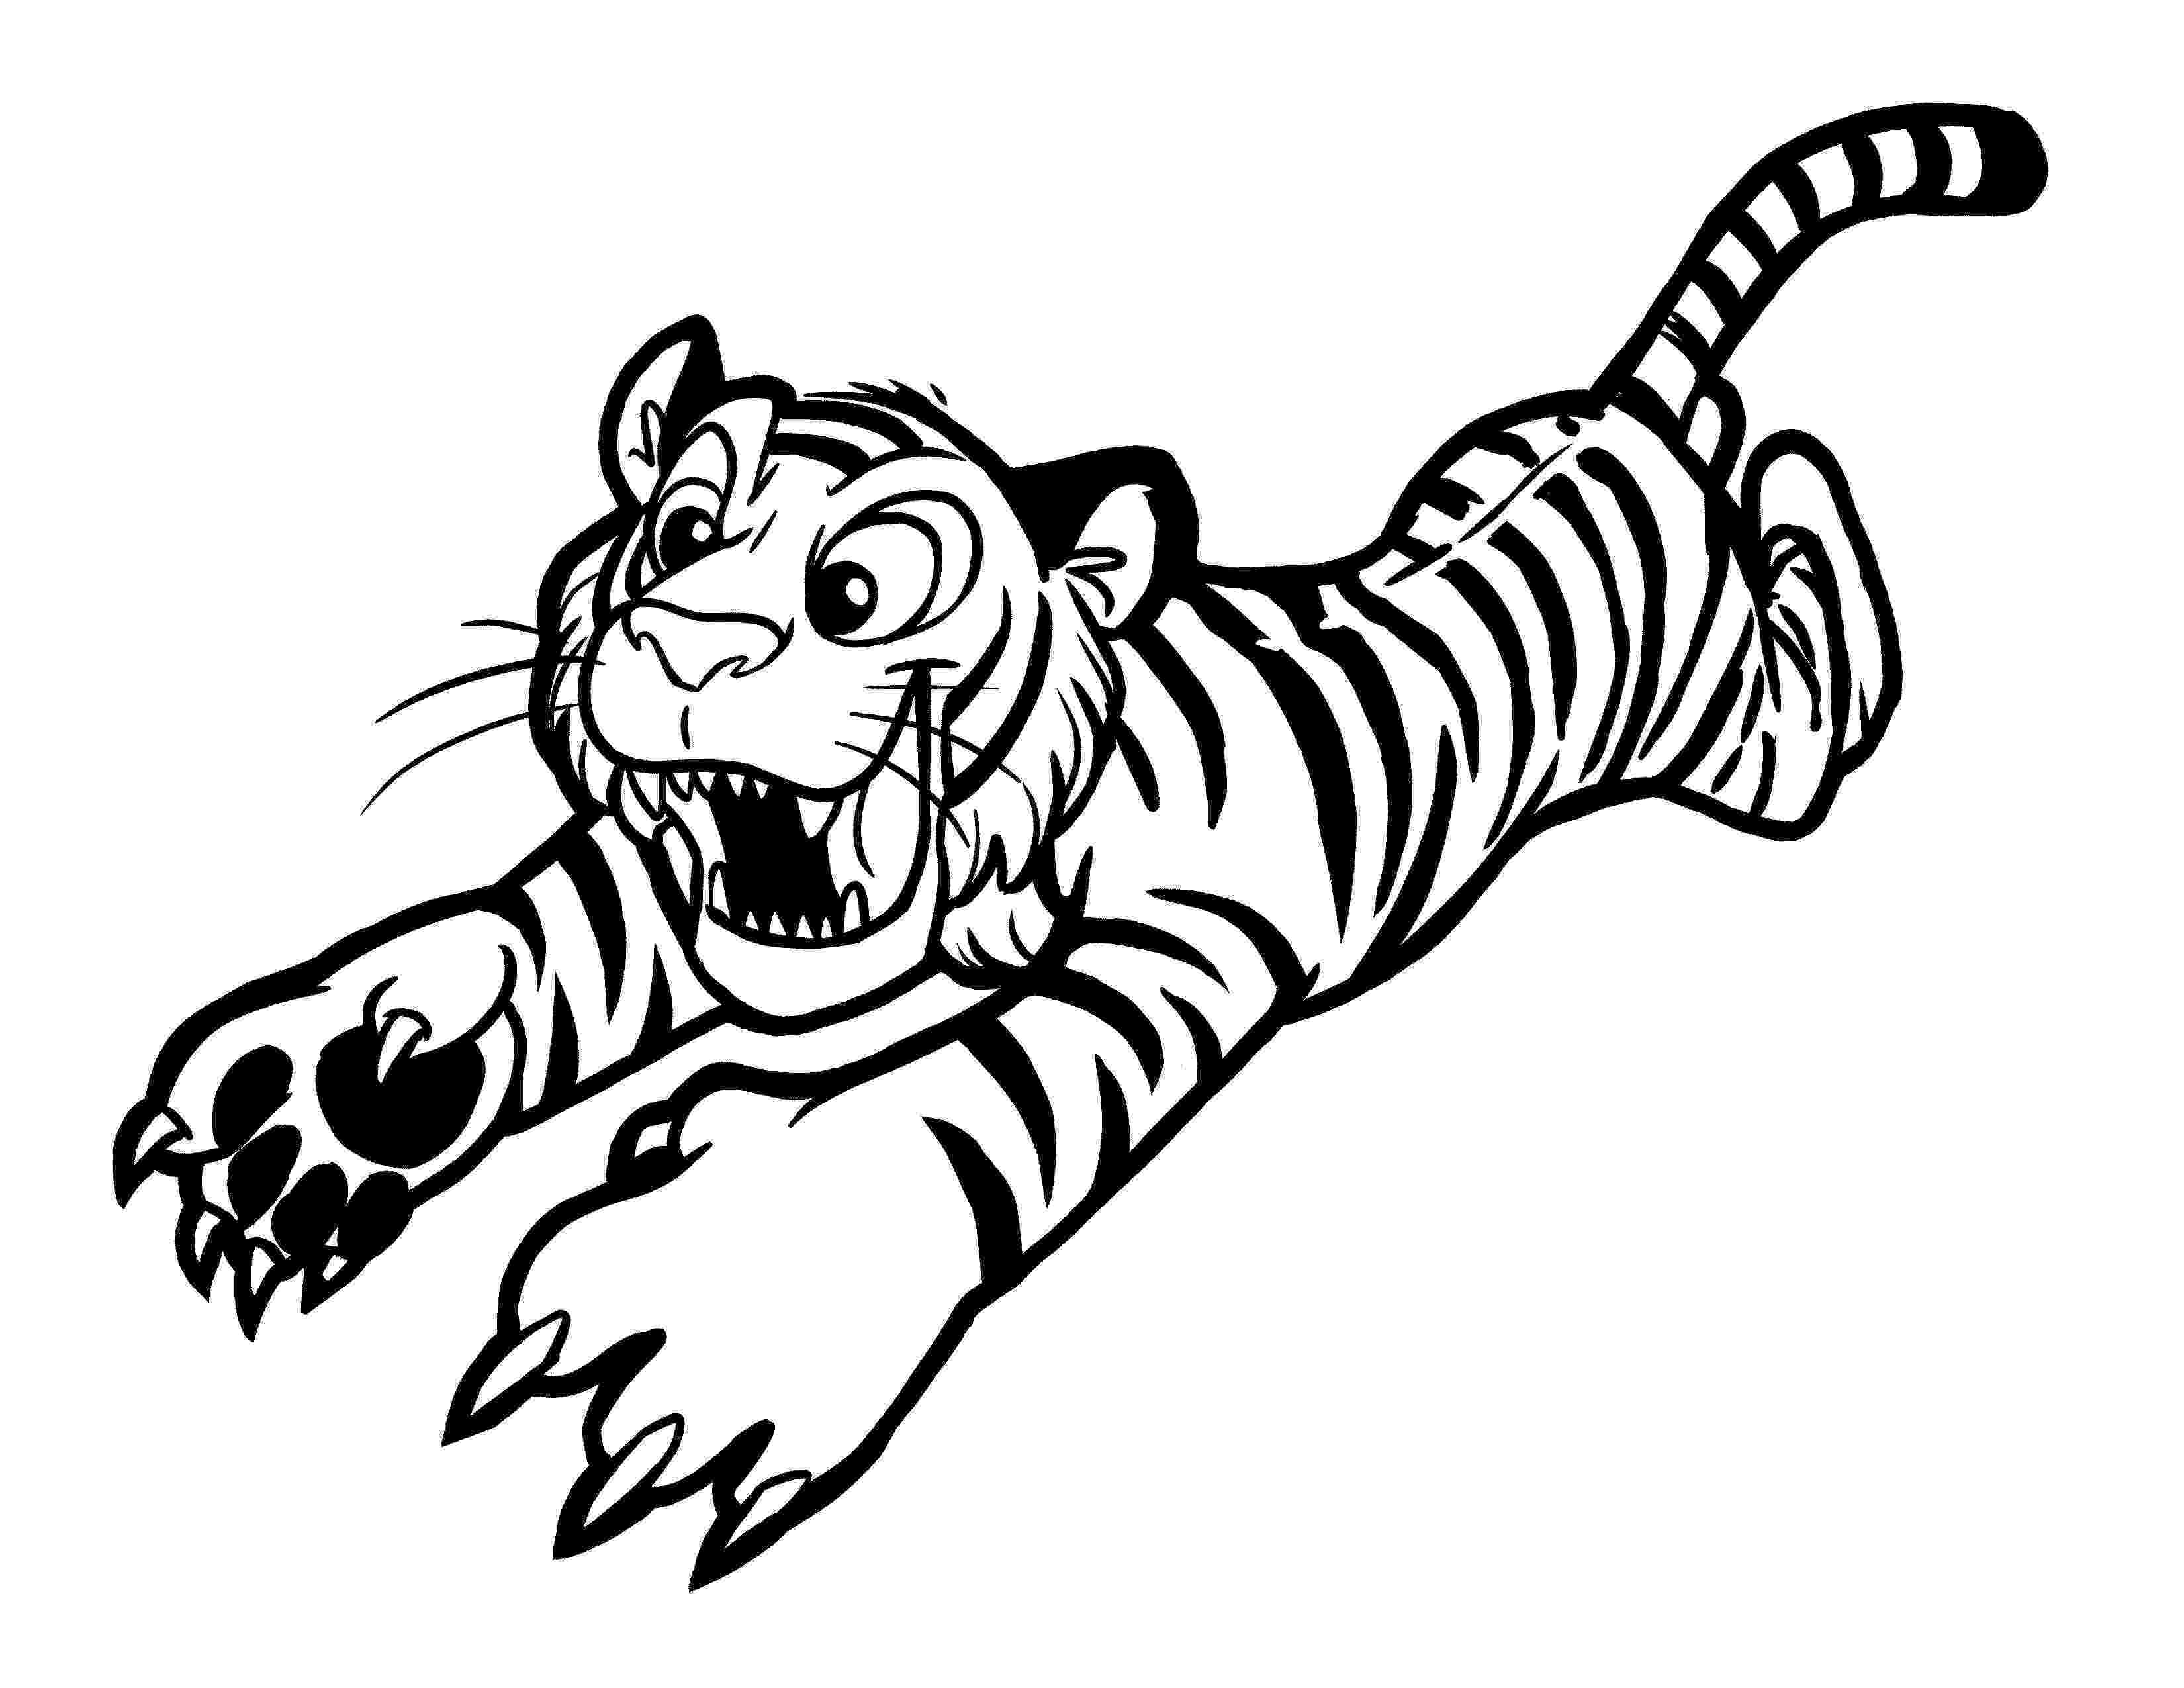 tiger pictures to print and color free printable tiger coloring pages for kids tiger color to and print pictures